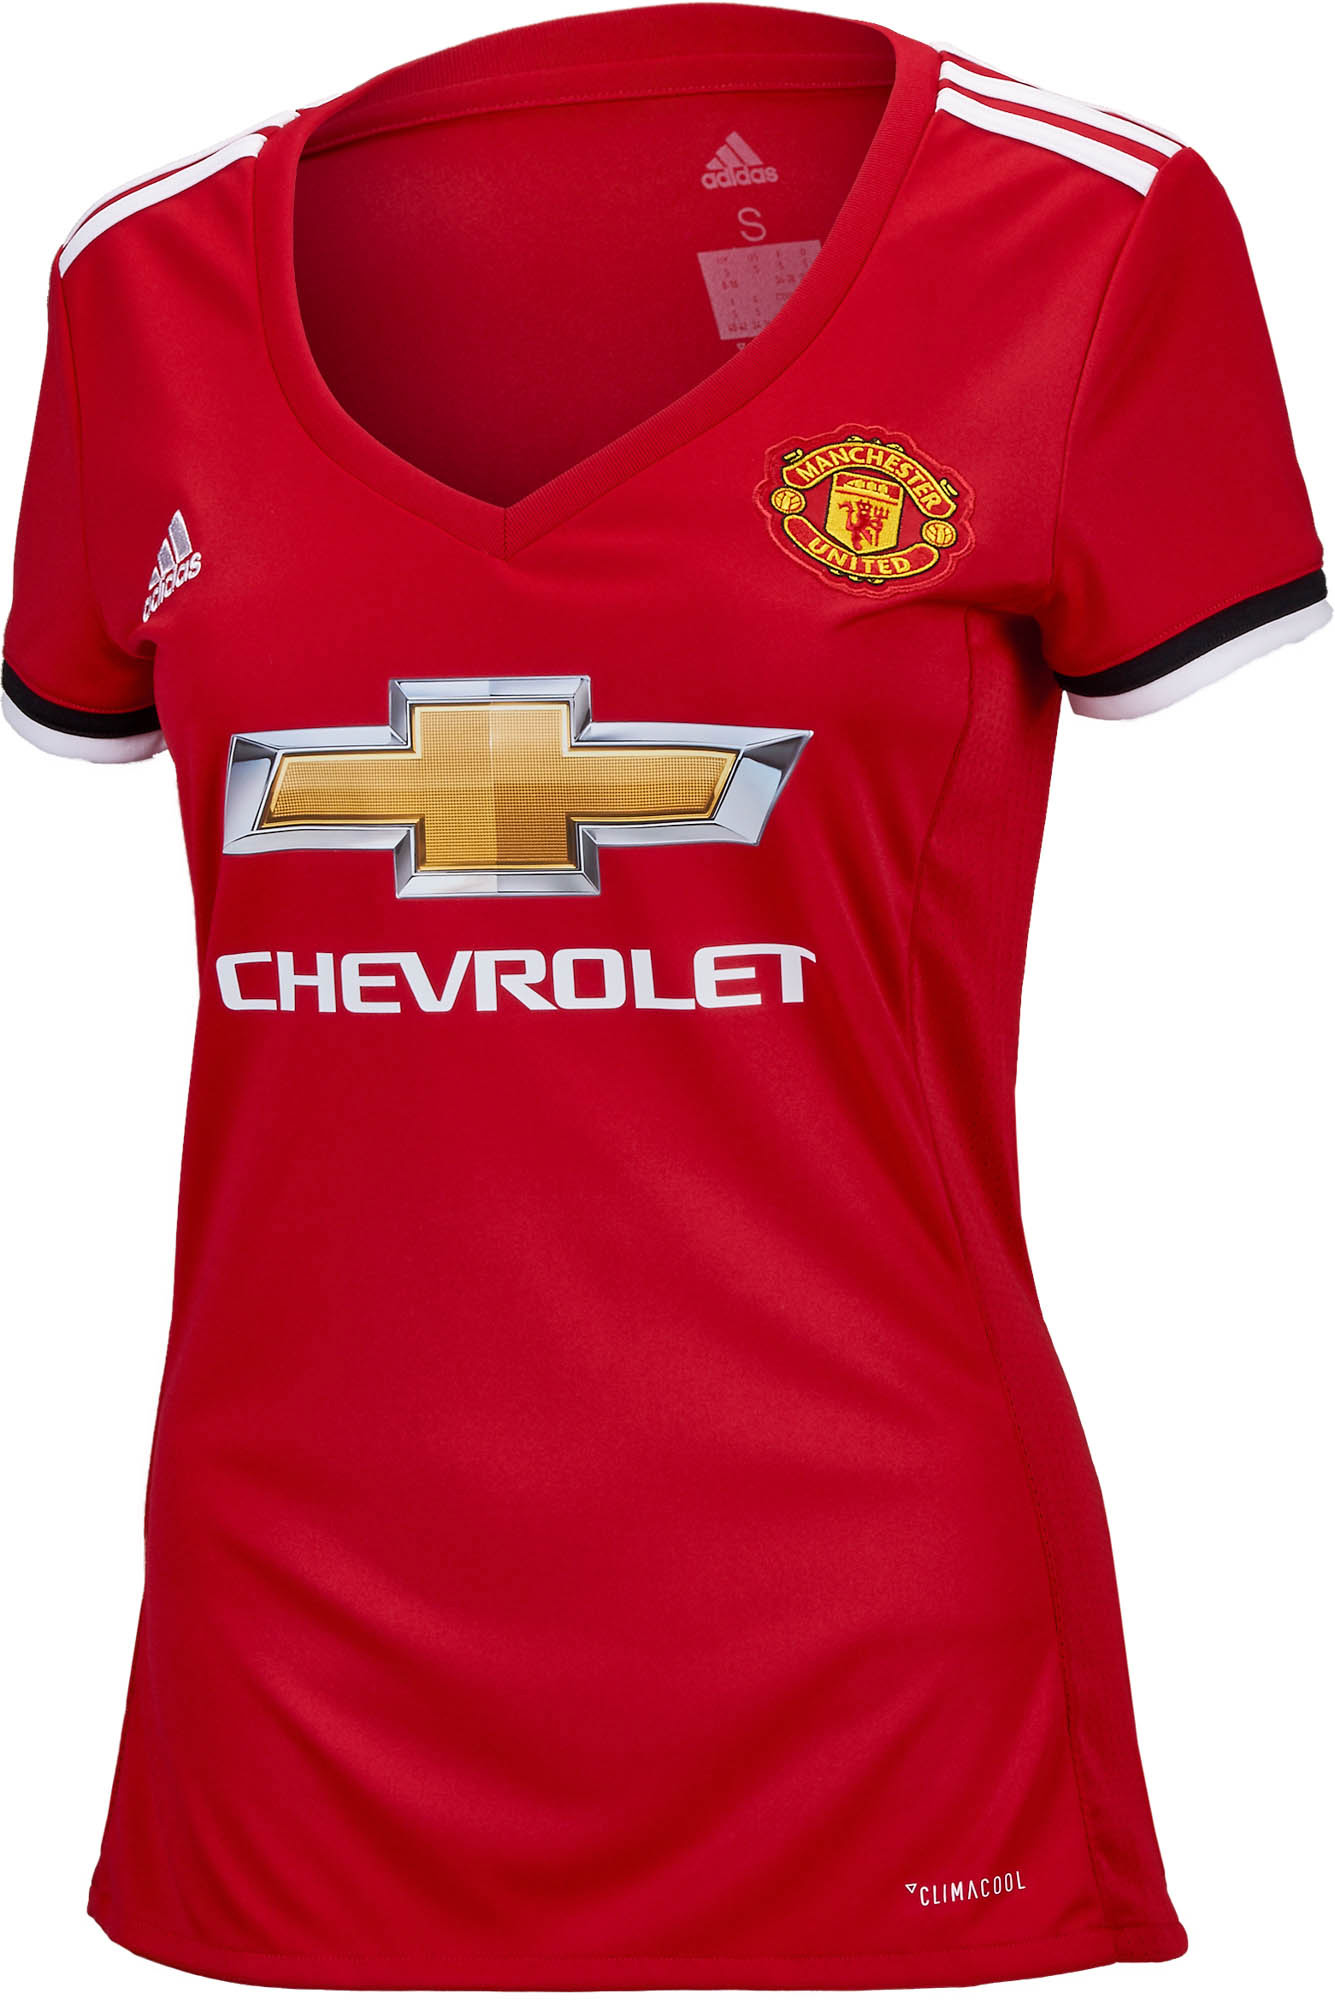 adidas Womens Manchester United Home Jersey 2017-18 - Soccer ... 4e5fb3bdb6